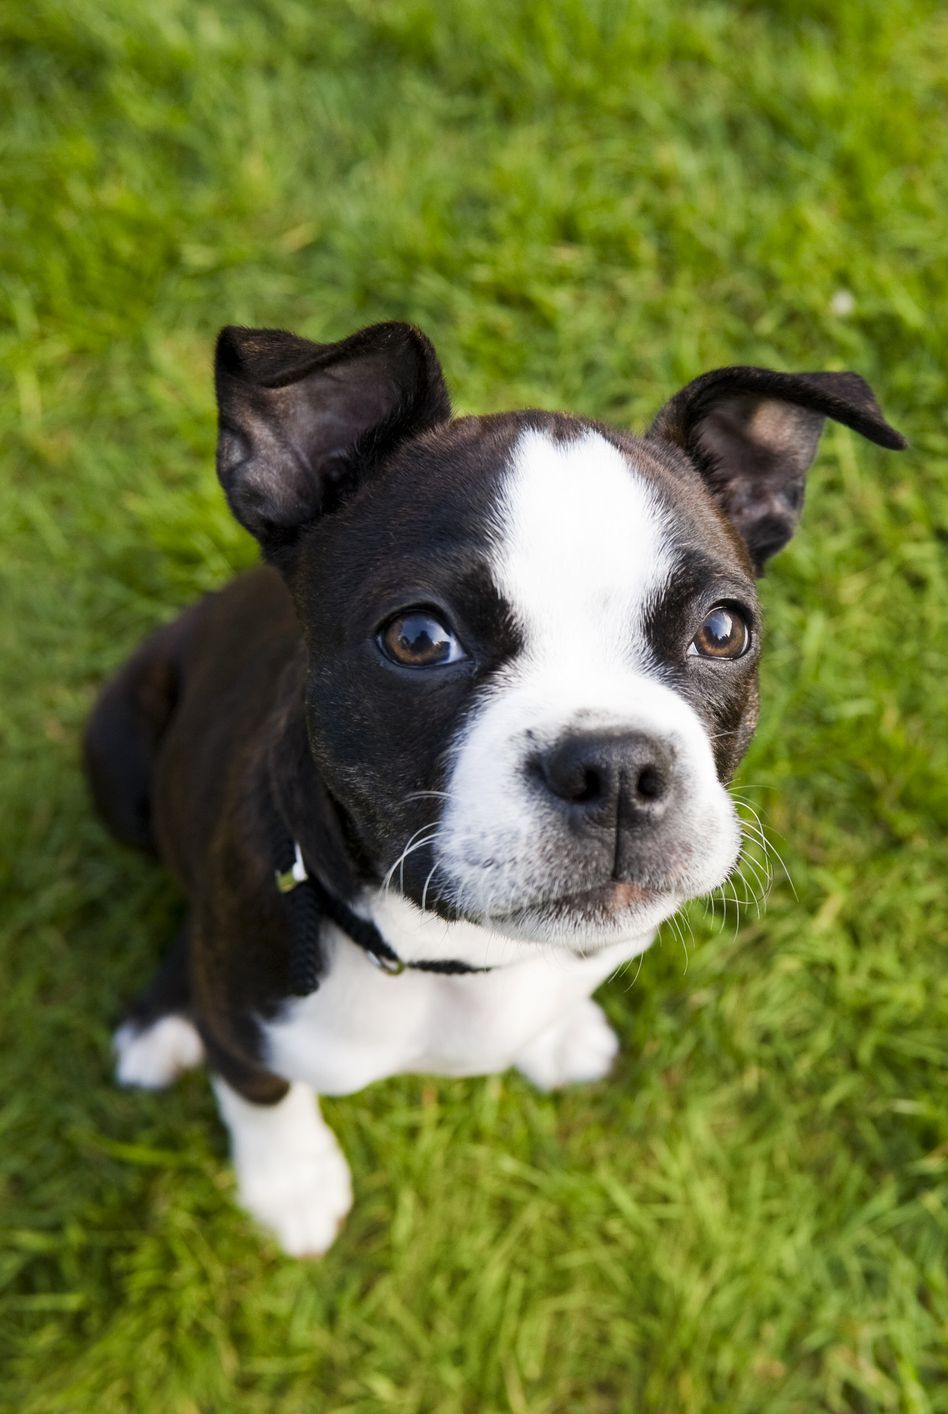 15 Best Dogs For Apartment Living Good Dog Breeds For Apartments I Love My Dog Best Apartment Dogs Apartment Dogs Boston Terrier Puppy